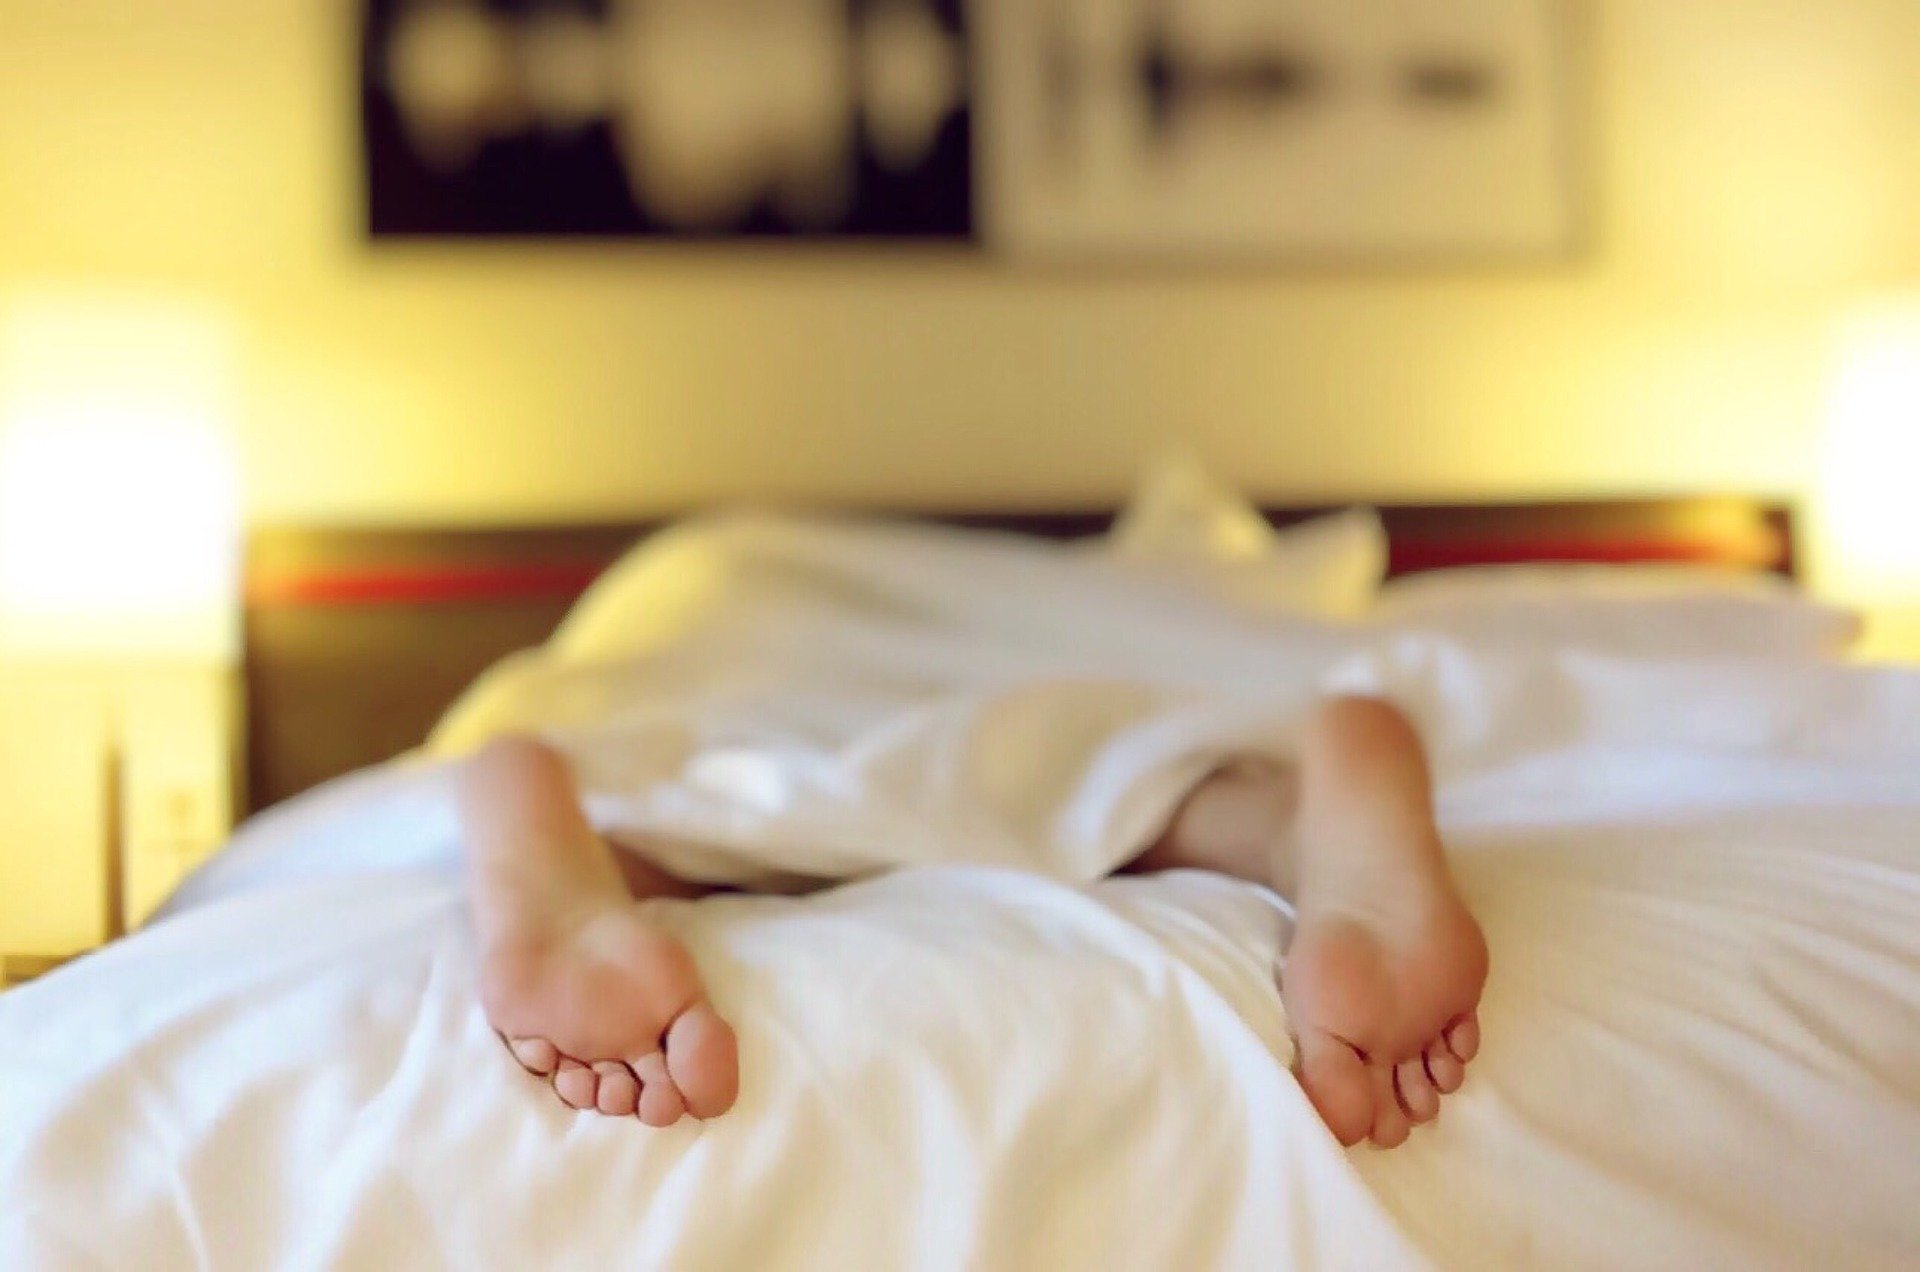 Sleep deprivation can have a negative impact on ethical decision-making, says expert